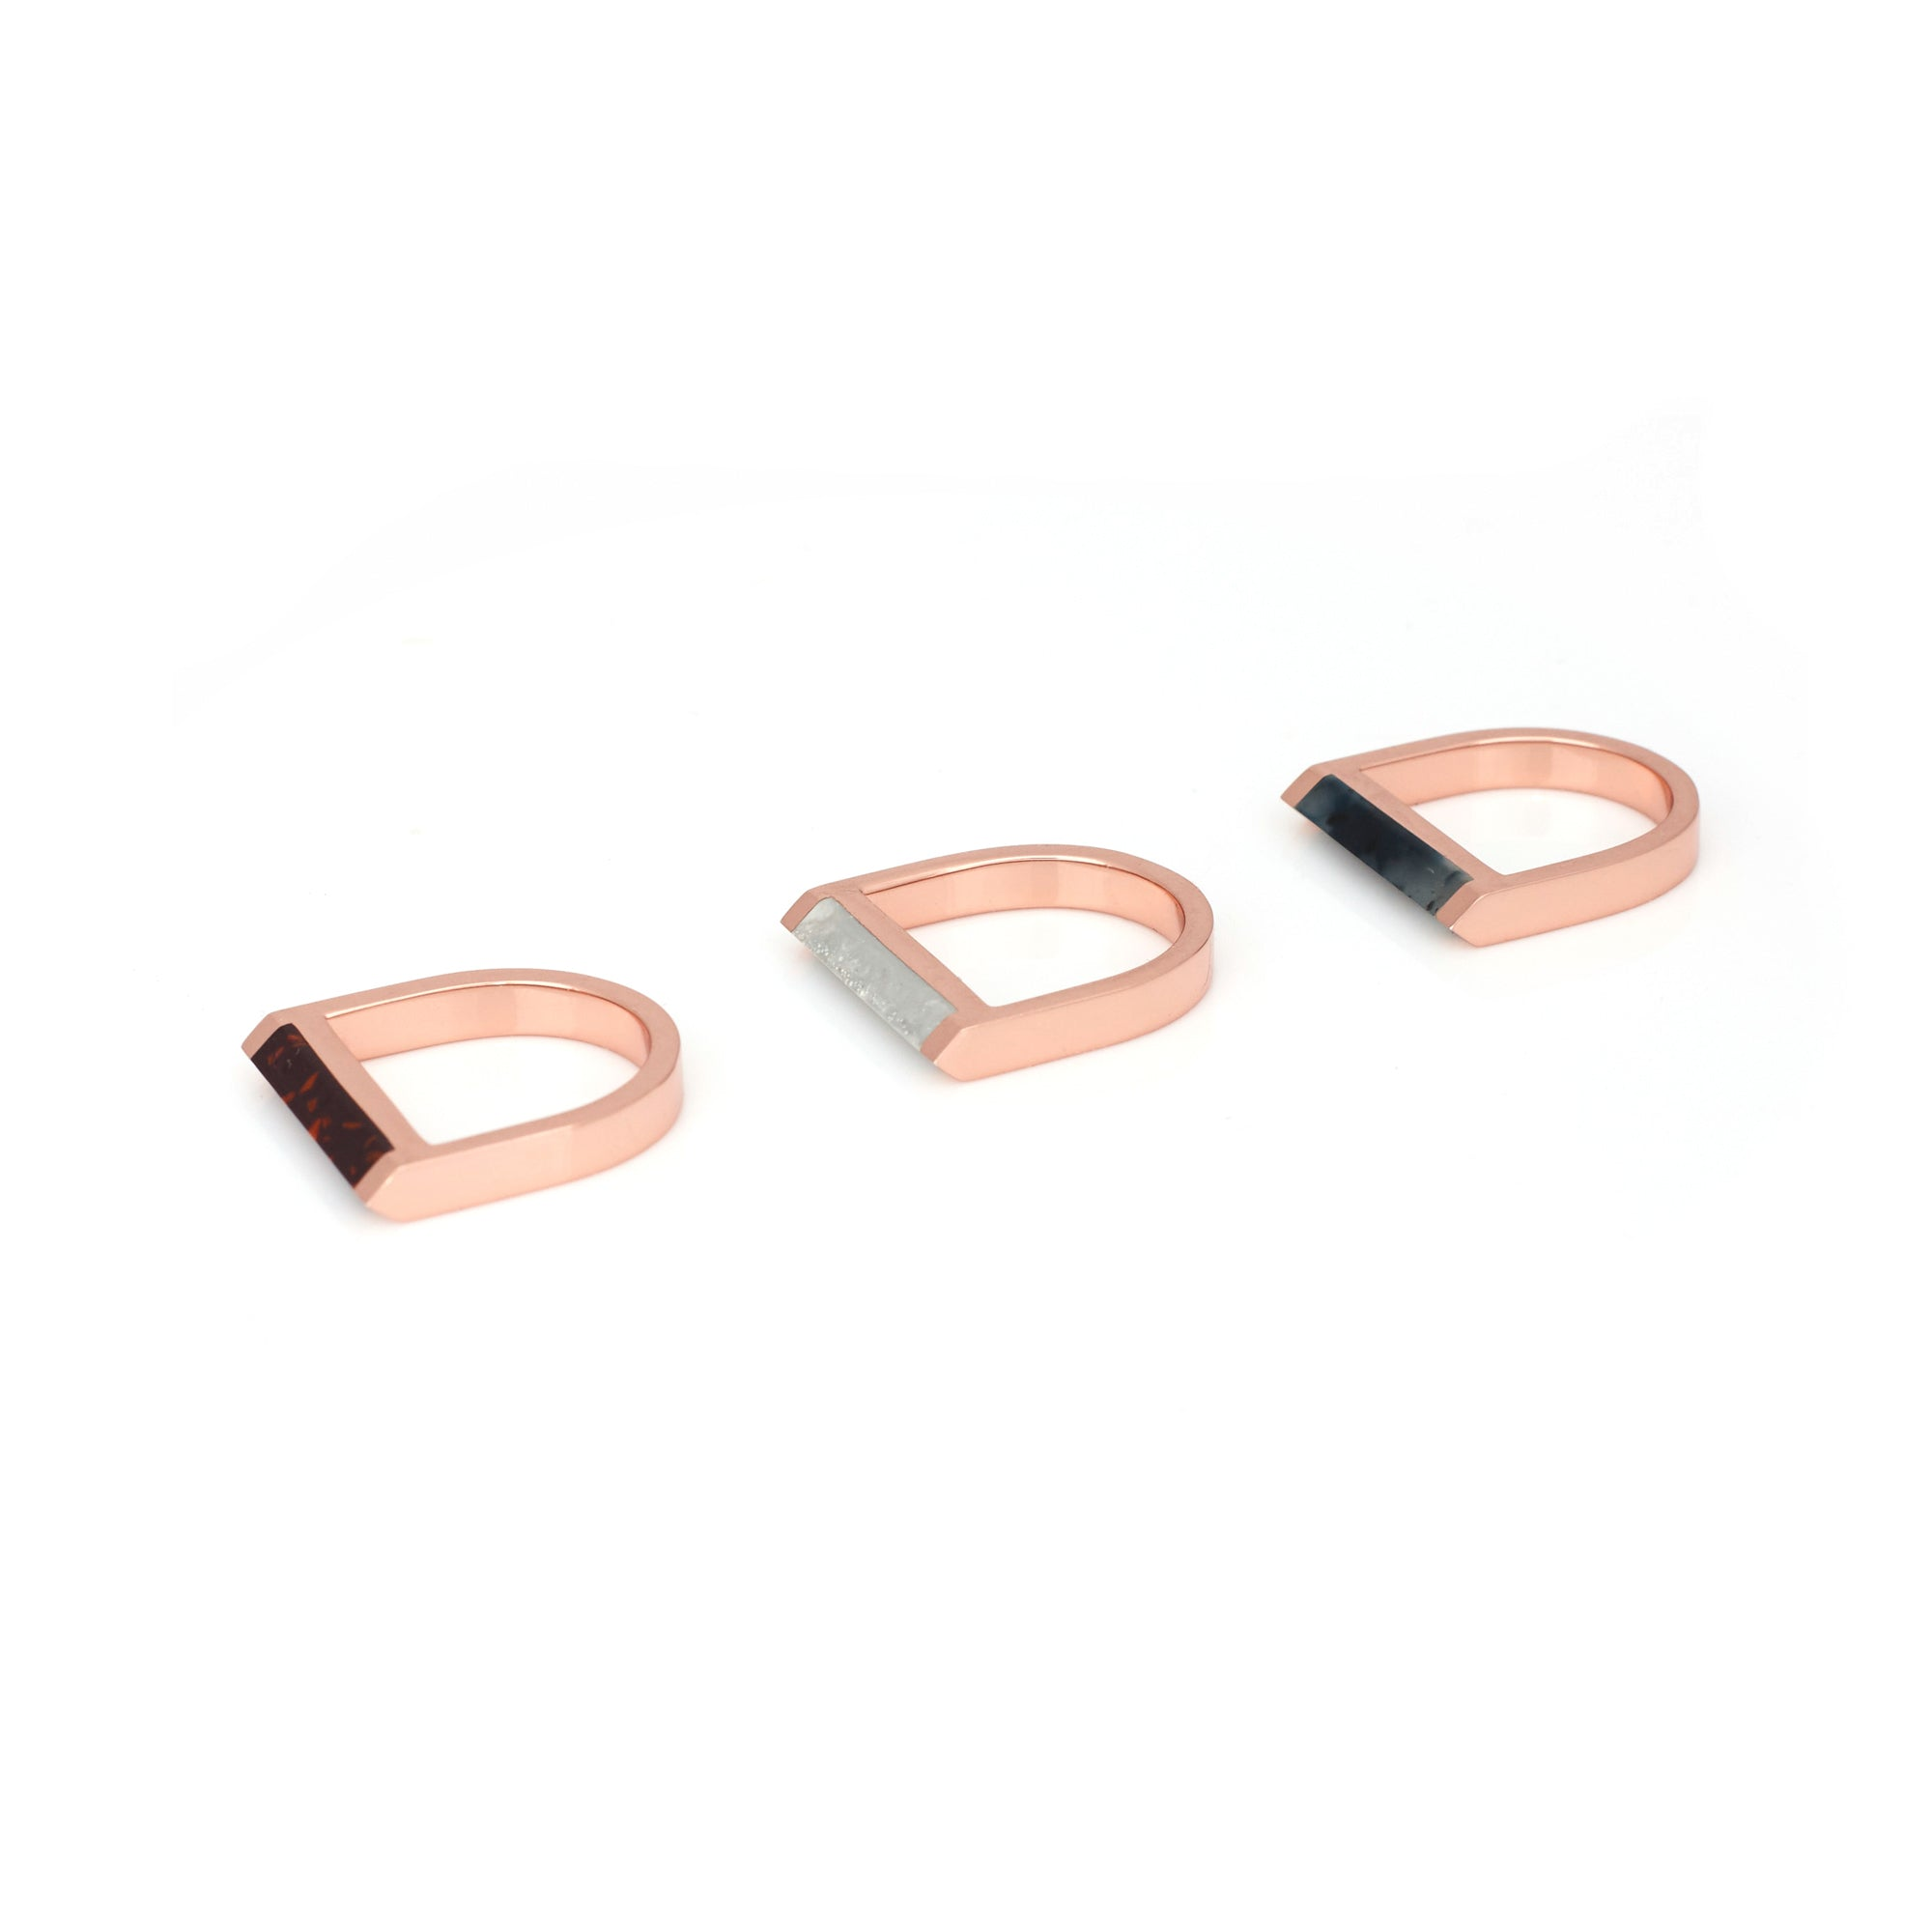 Alexandra Ring Set - Augergine Chip